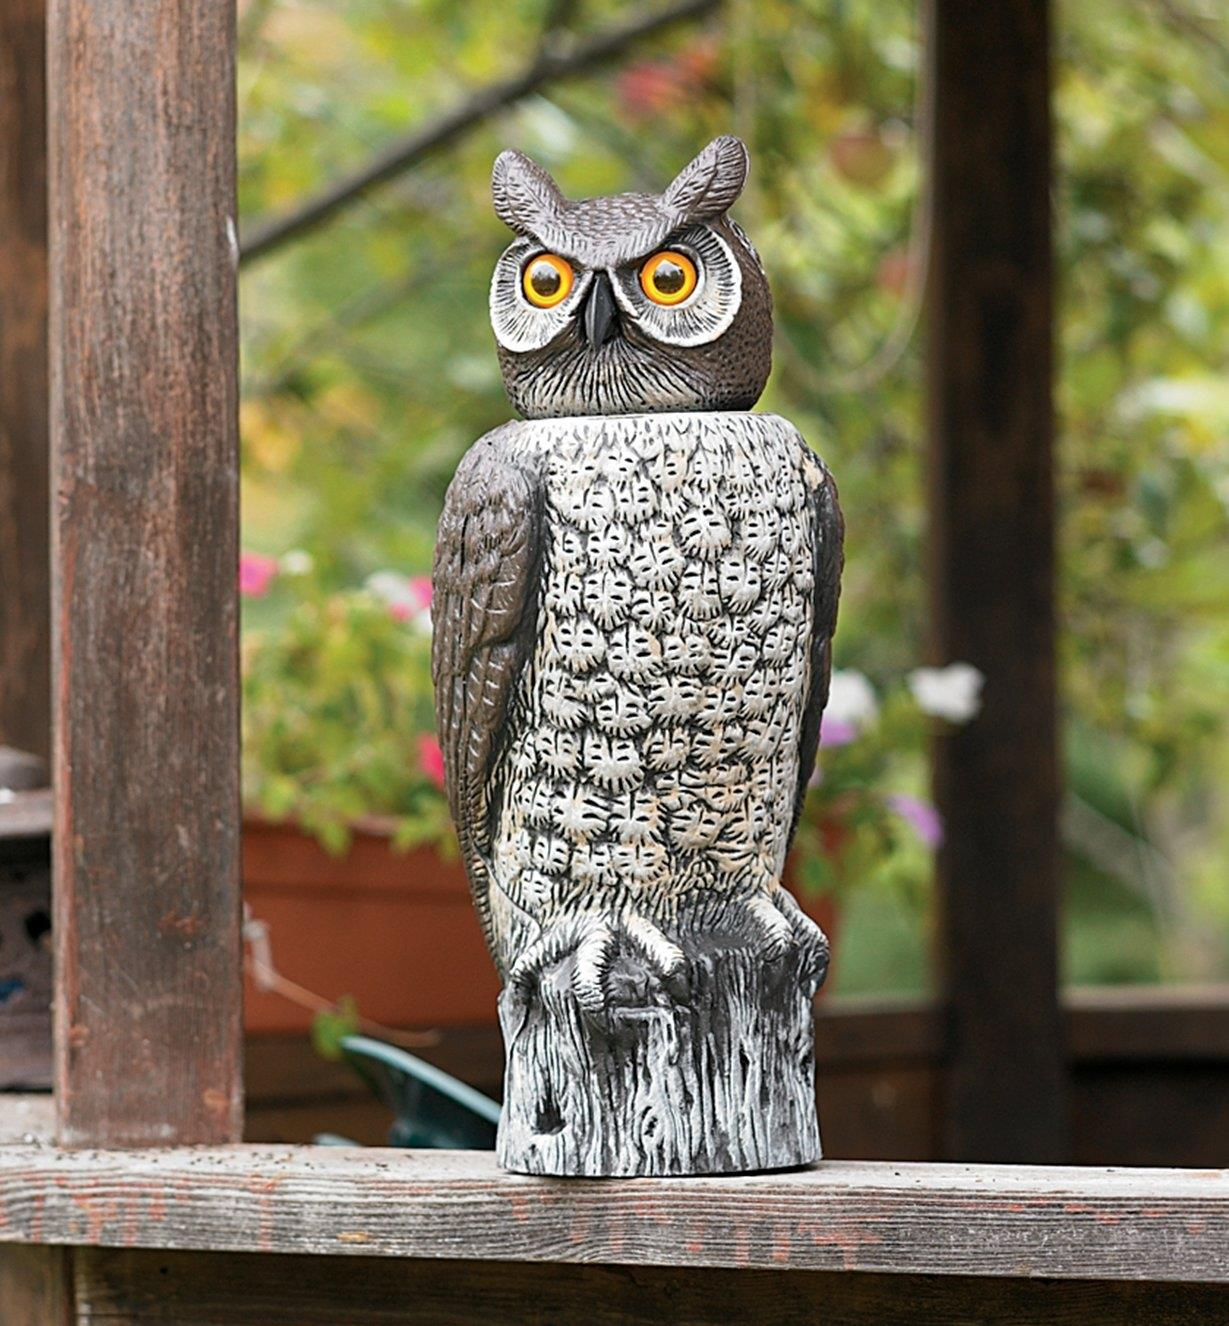 Garden Scare Owl placed on a railing